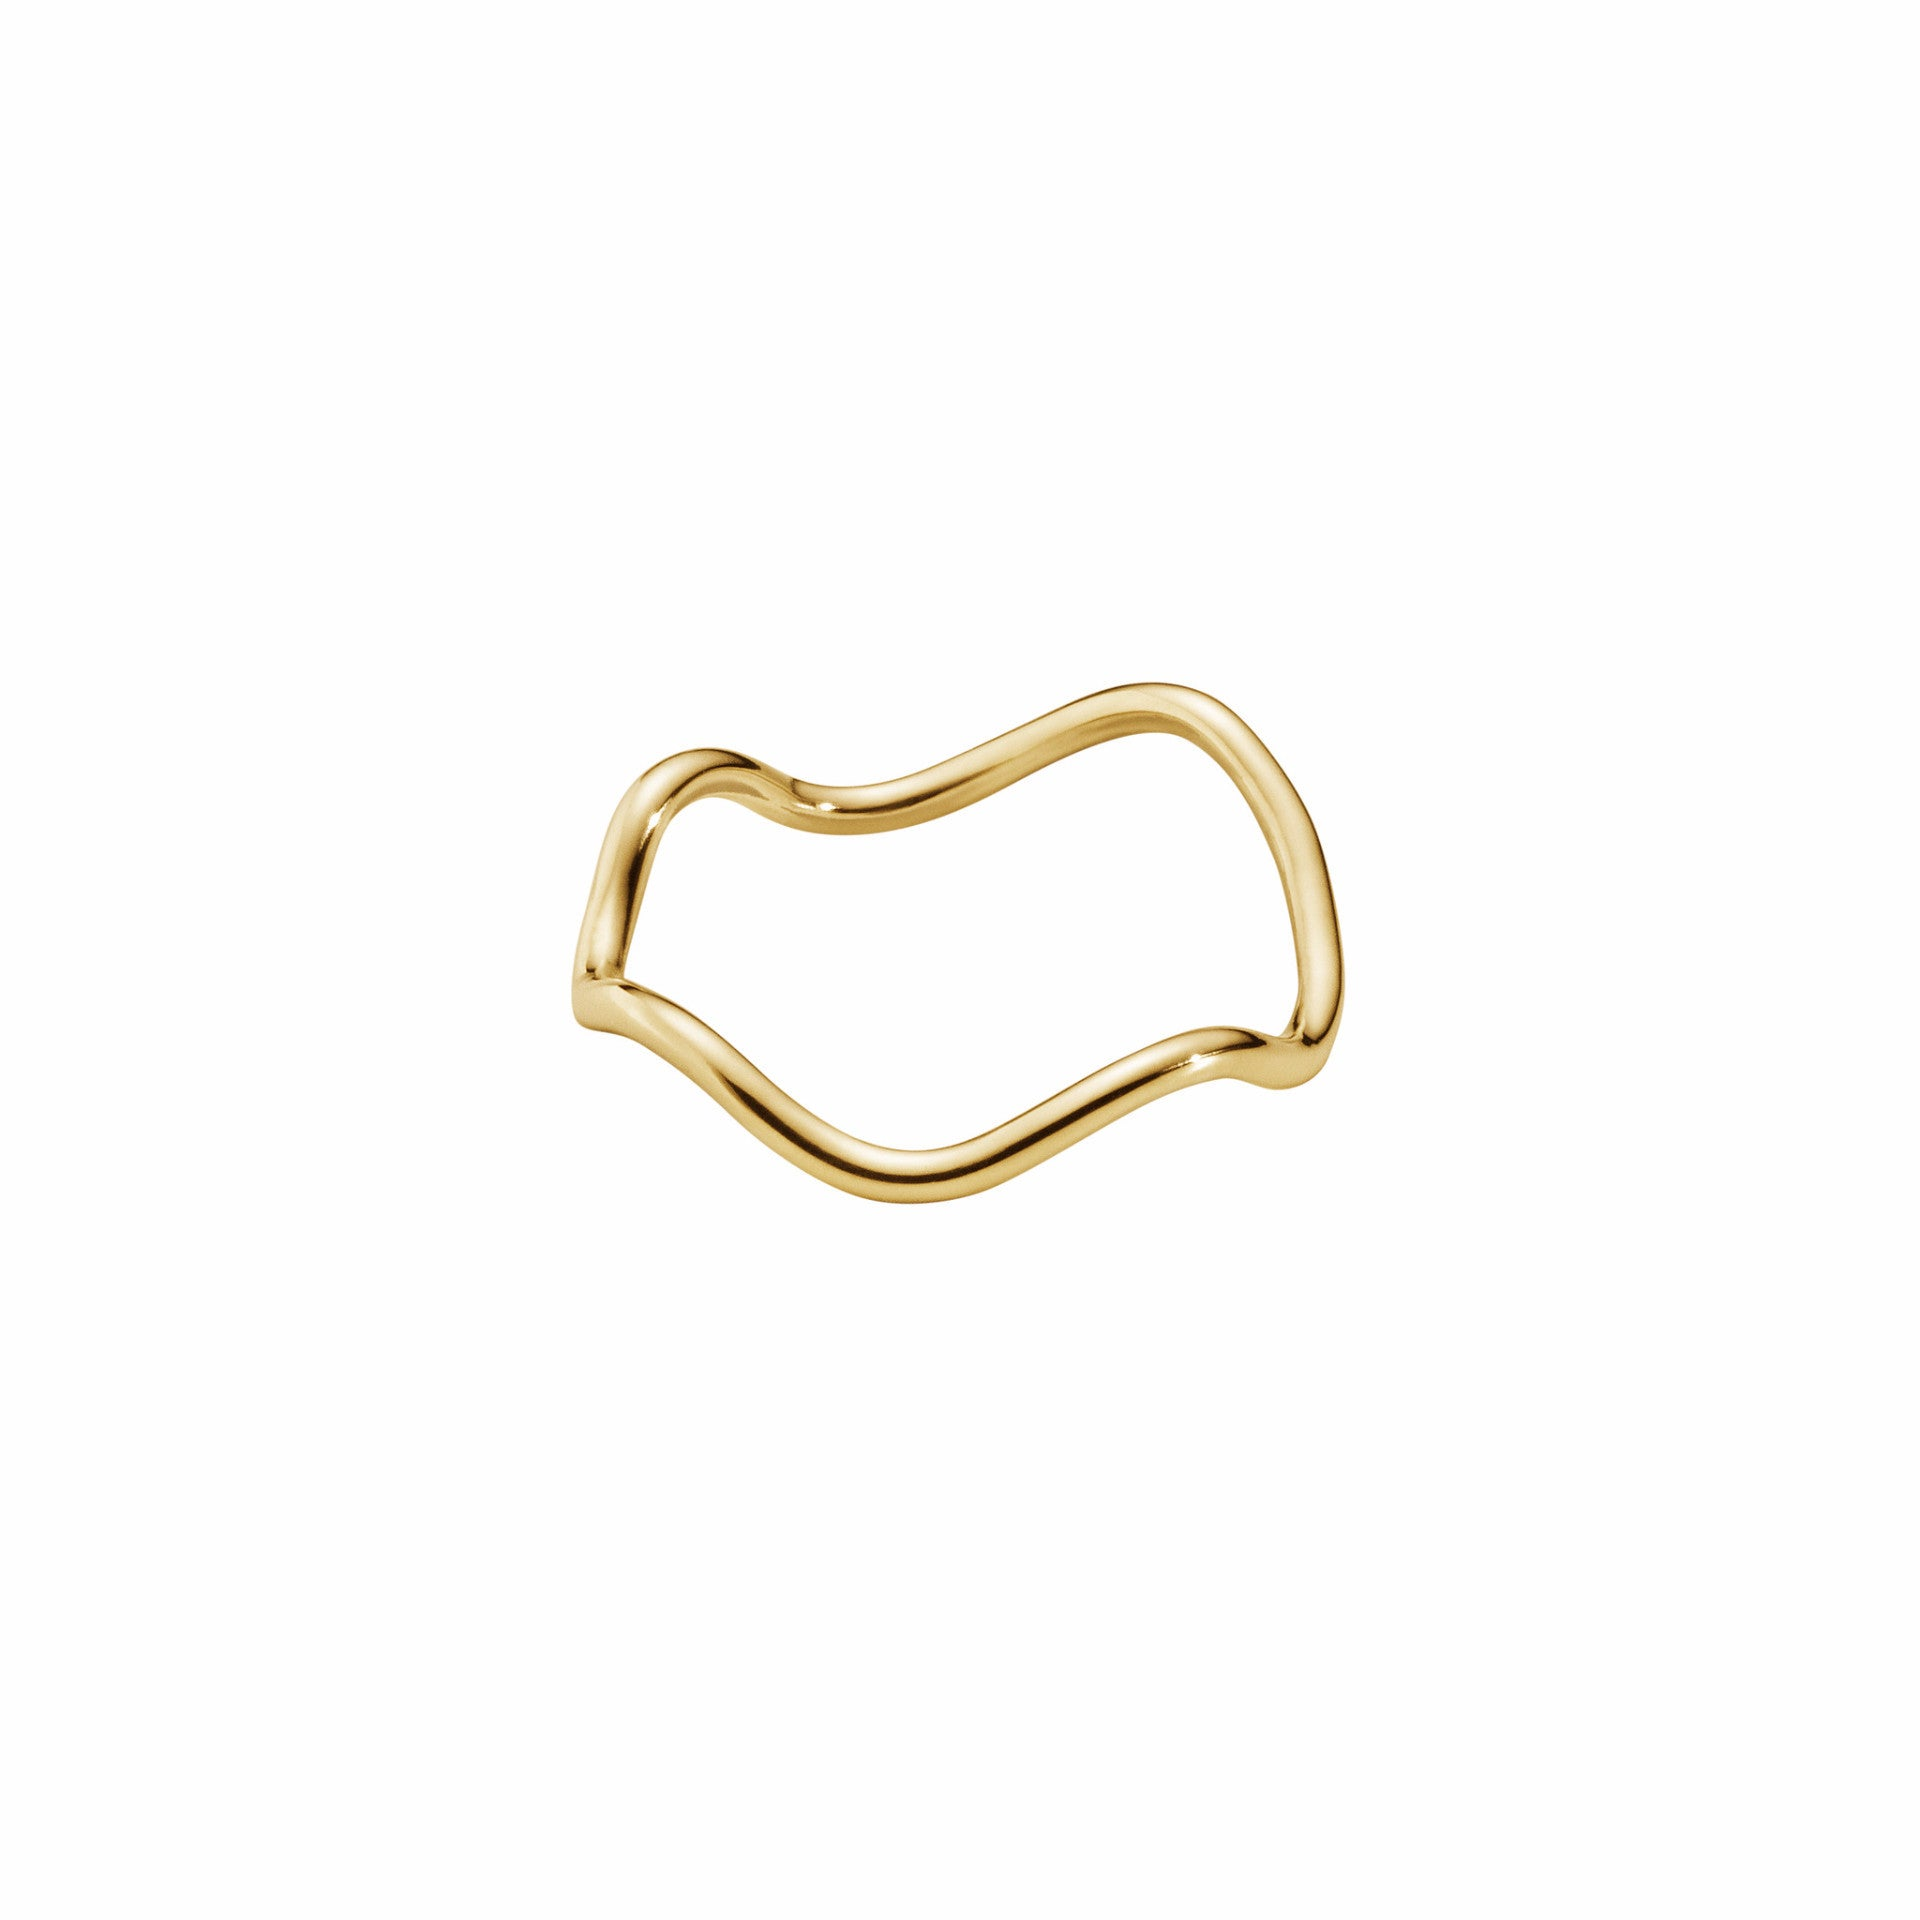 THIN WAVE · RING · 18KT. GOLD